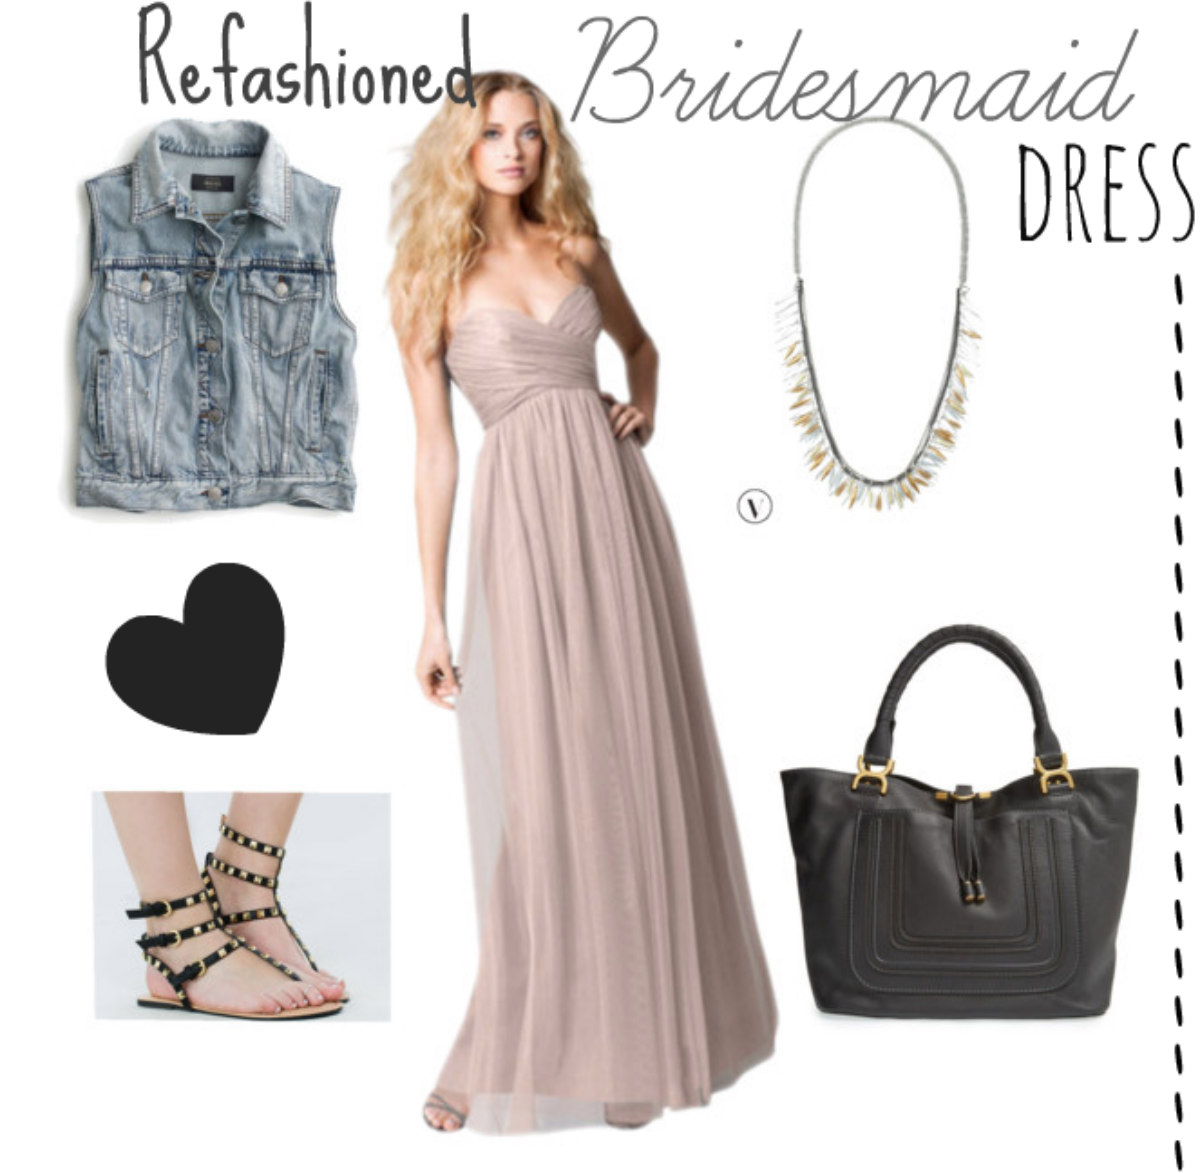 Refashioned bridesmaid dress